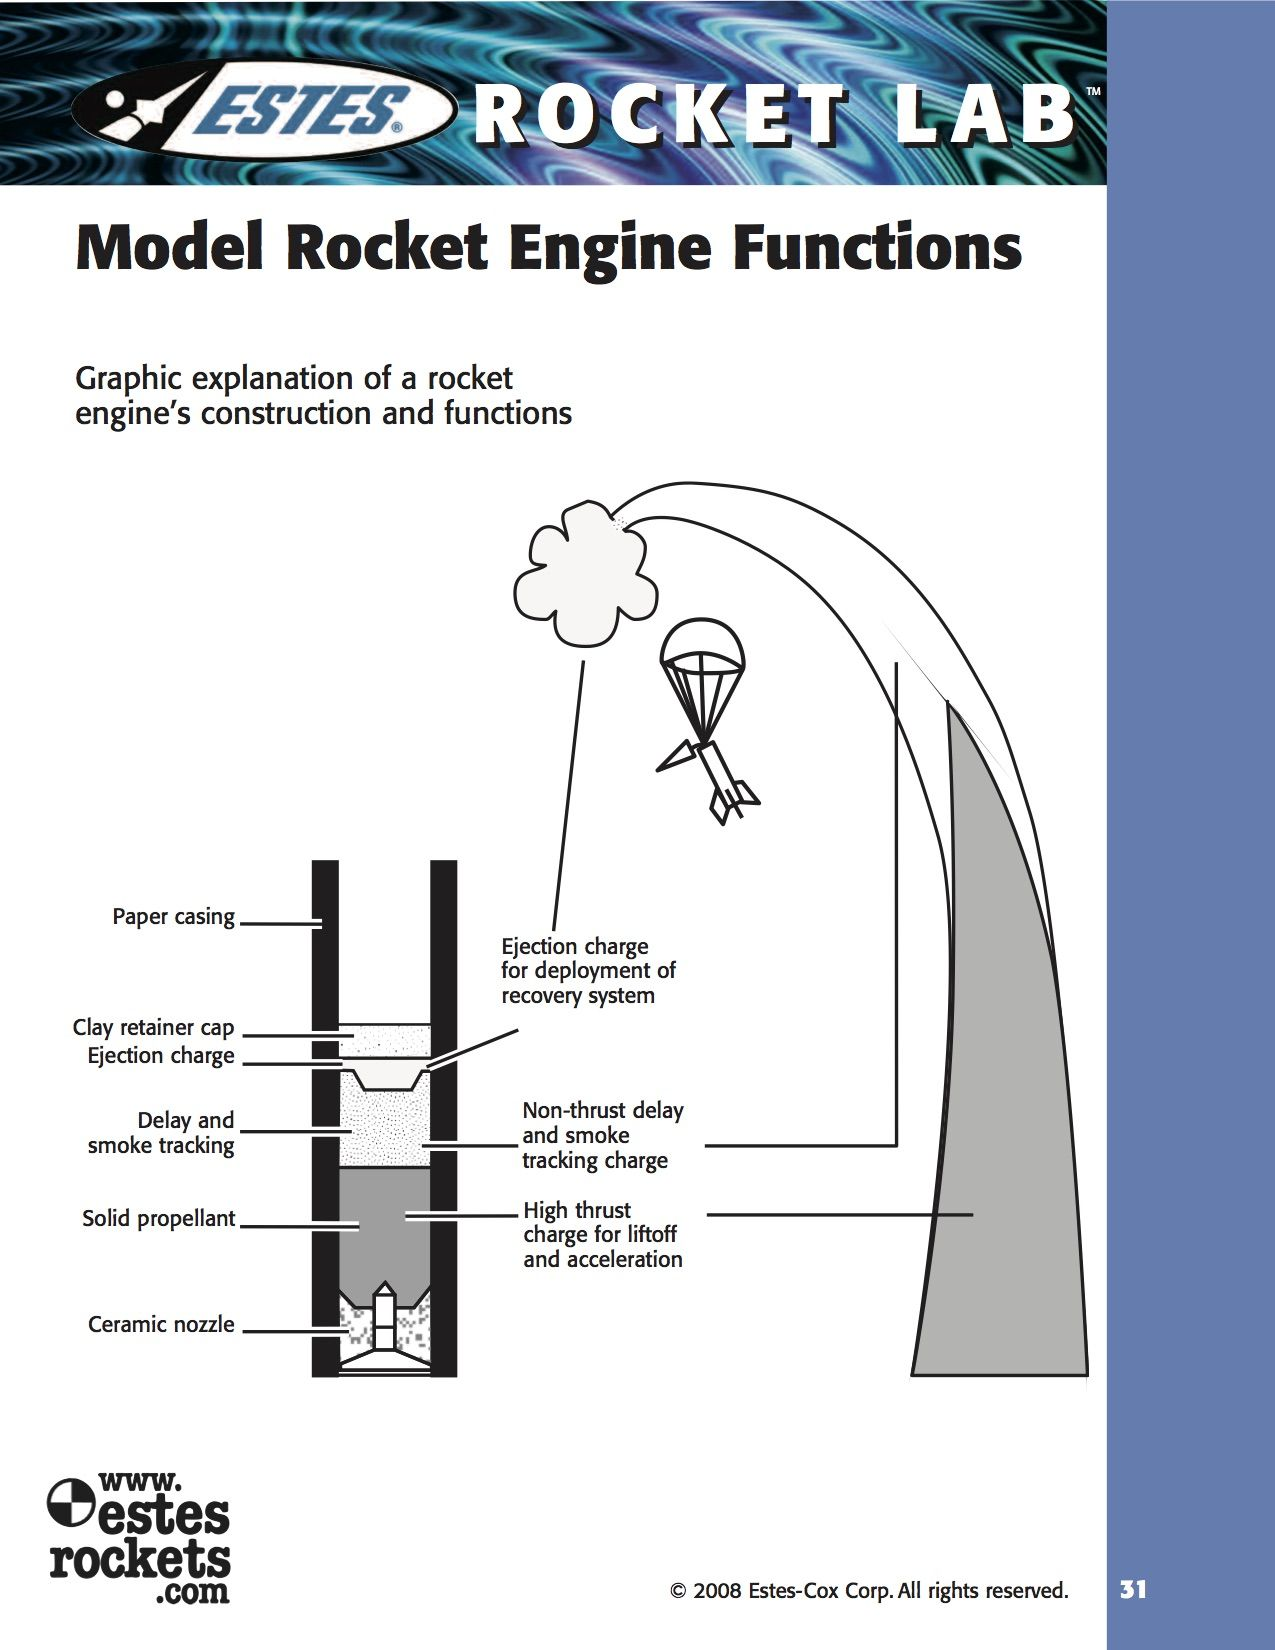 Model Rocket Engine Functions: Graphic explanation of a rocket engine's  construction and functions.